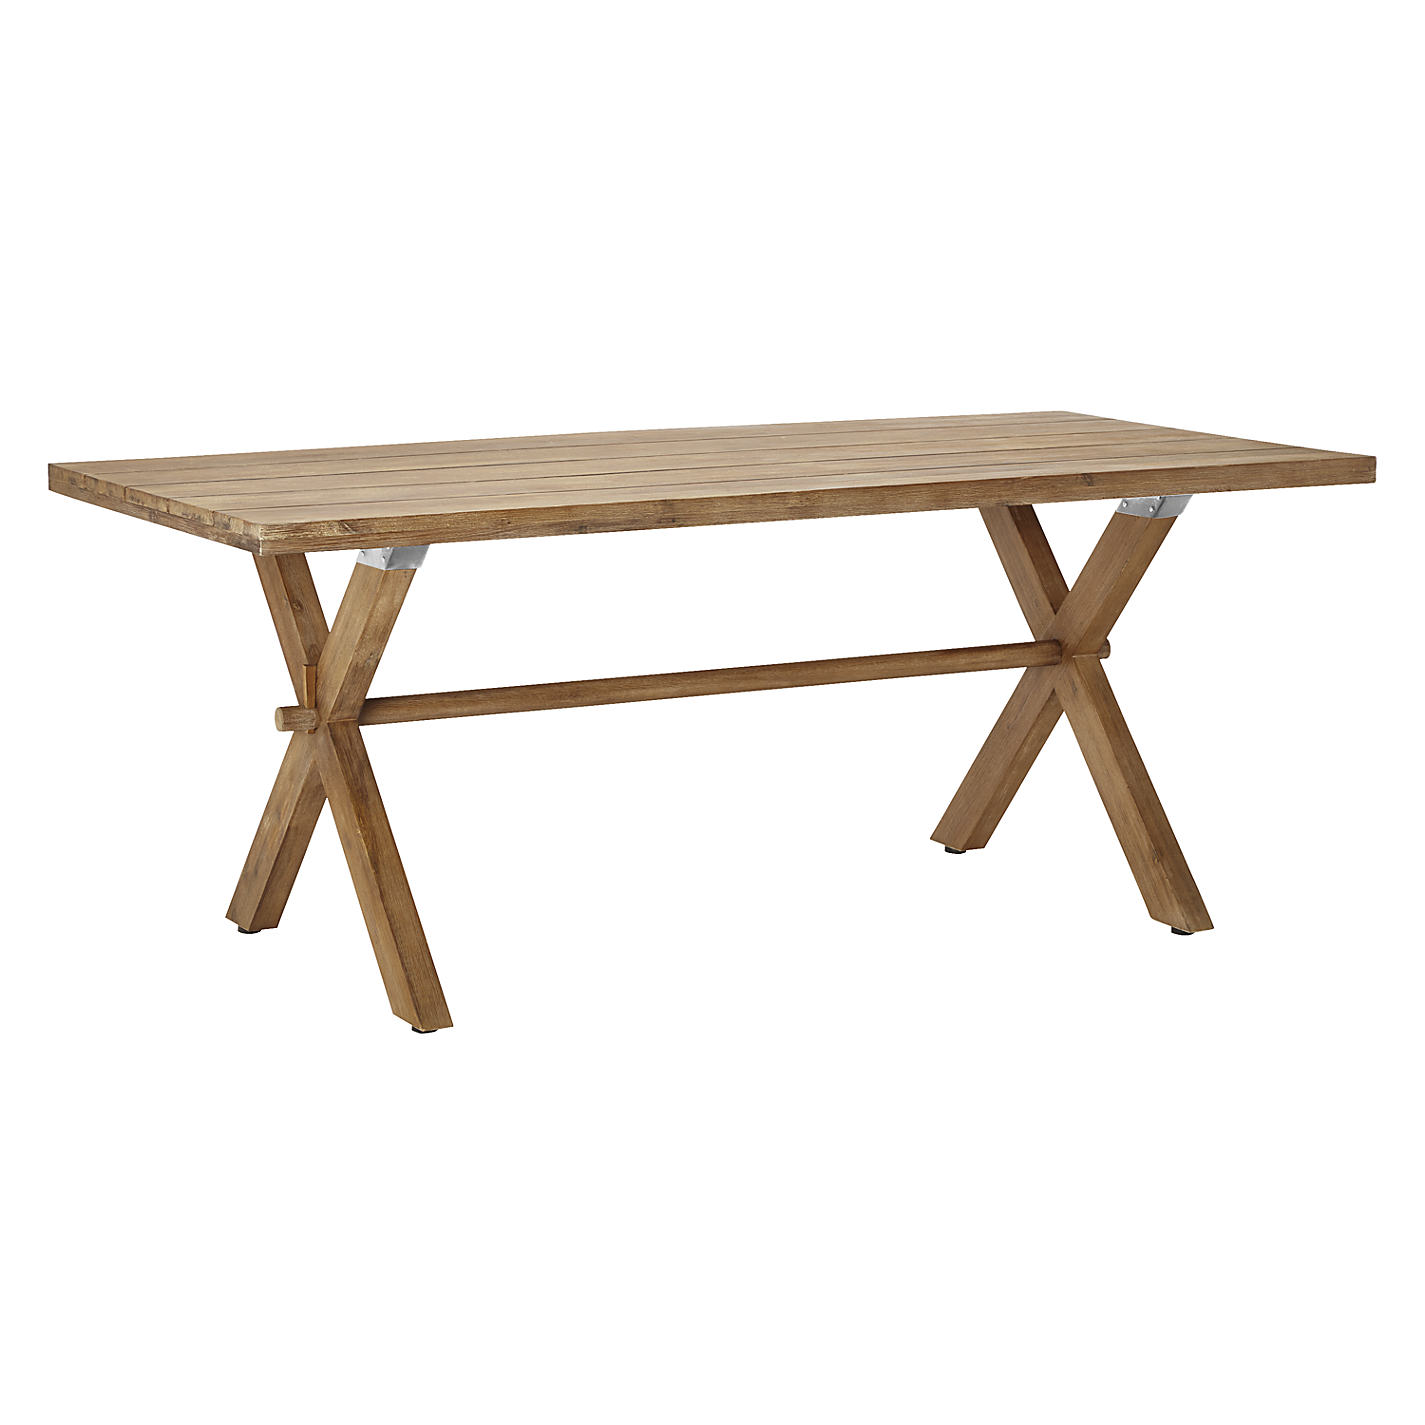 Folding side table john lewis - Buy John Lewis Croft Collection Islay 6 Seater Dining Table Fsc Certified